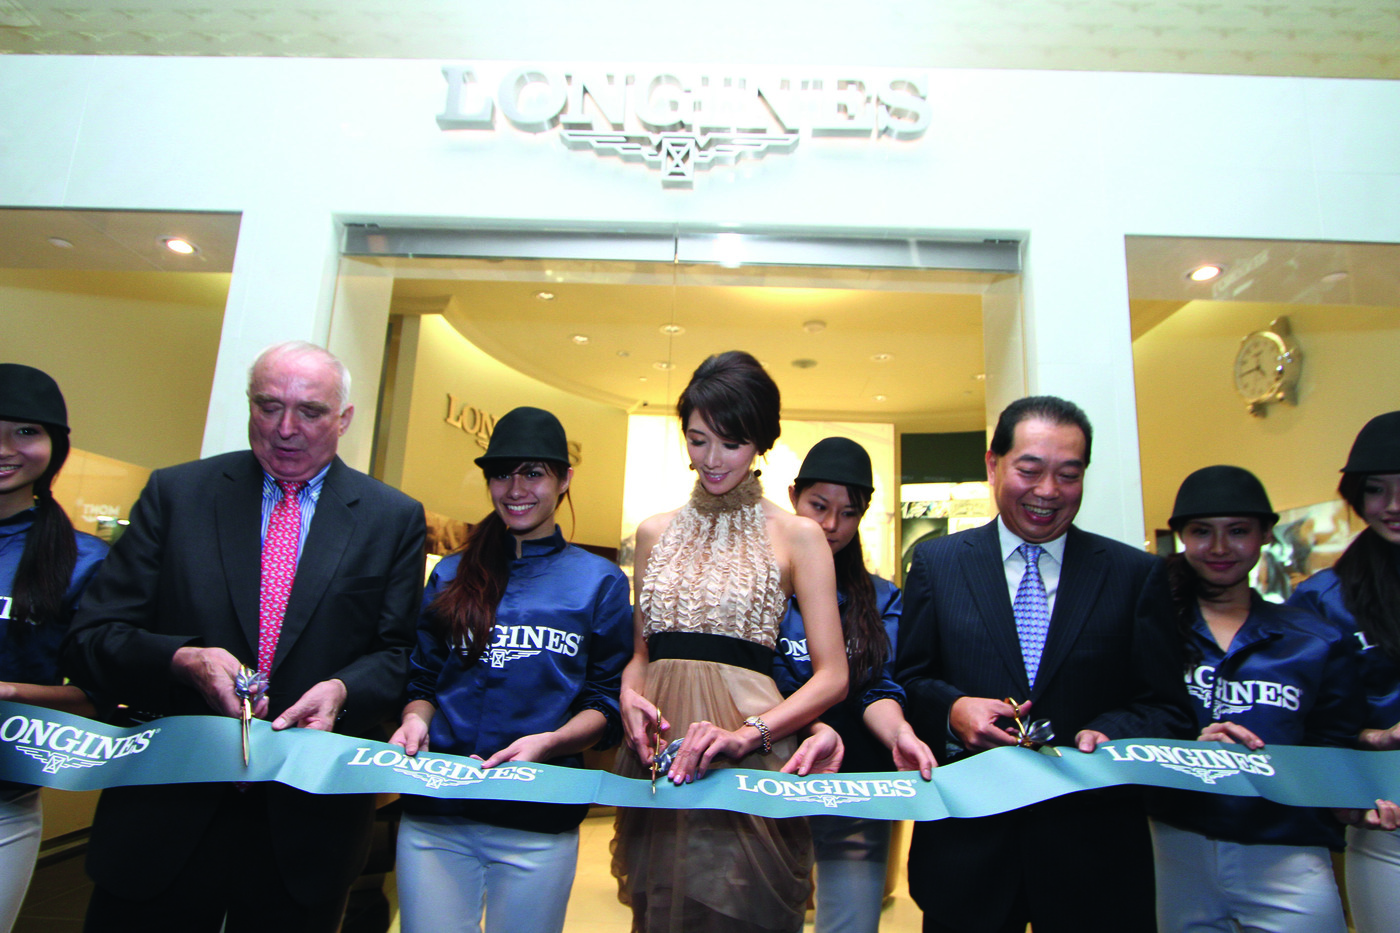 Longines Flat Racing Event: Longines Opens its 3rd Flagship Boutique and announces its new partnership with the Singapore Turf Club 1